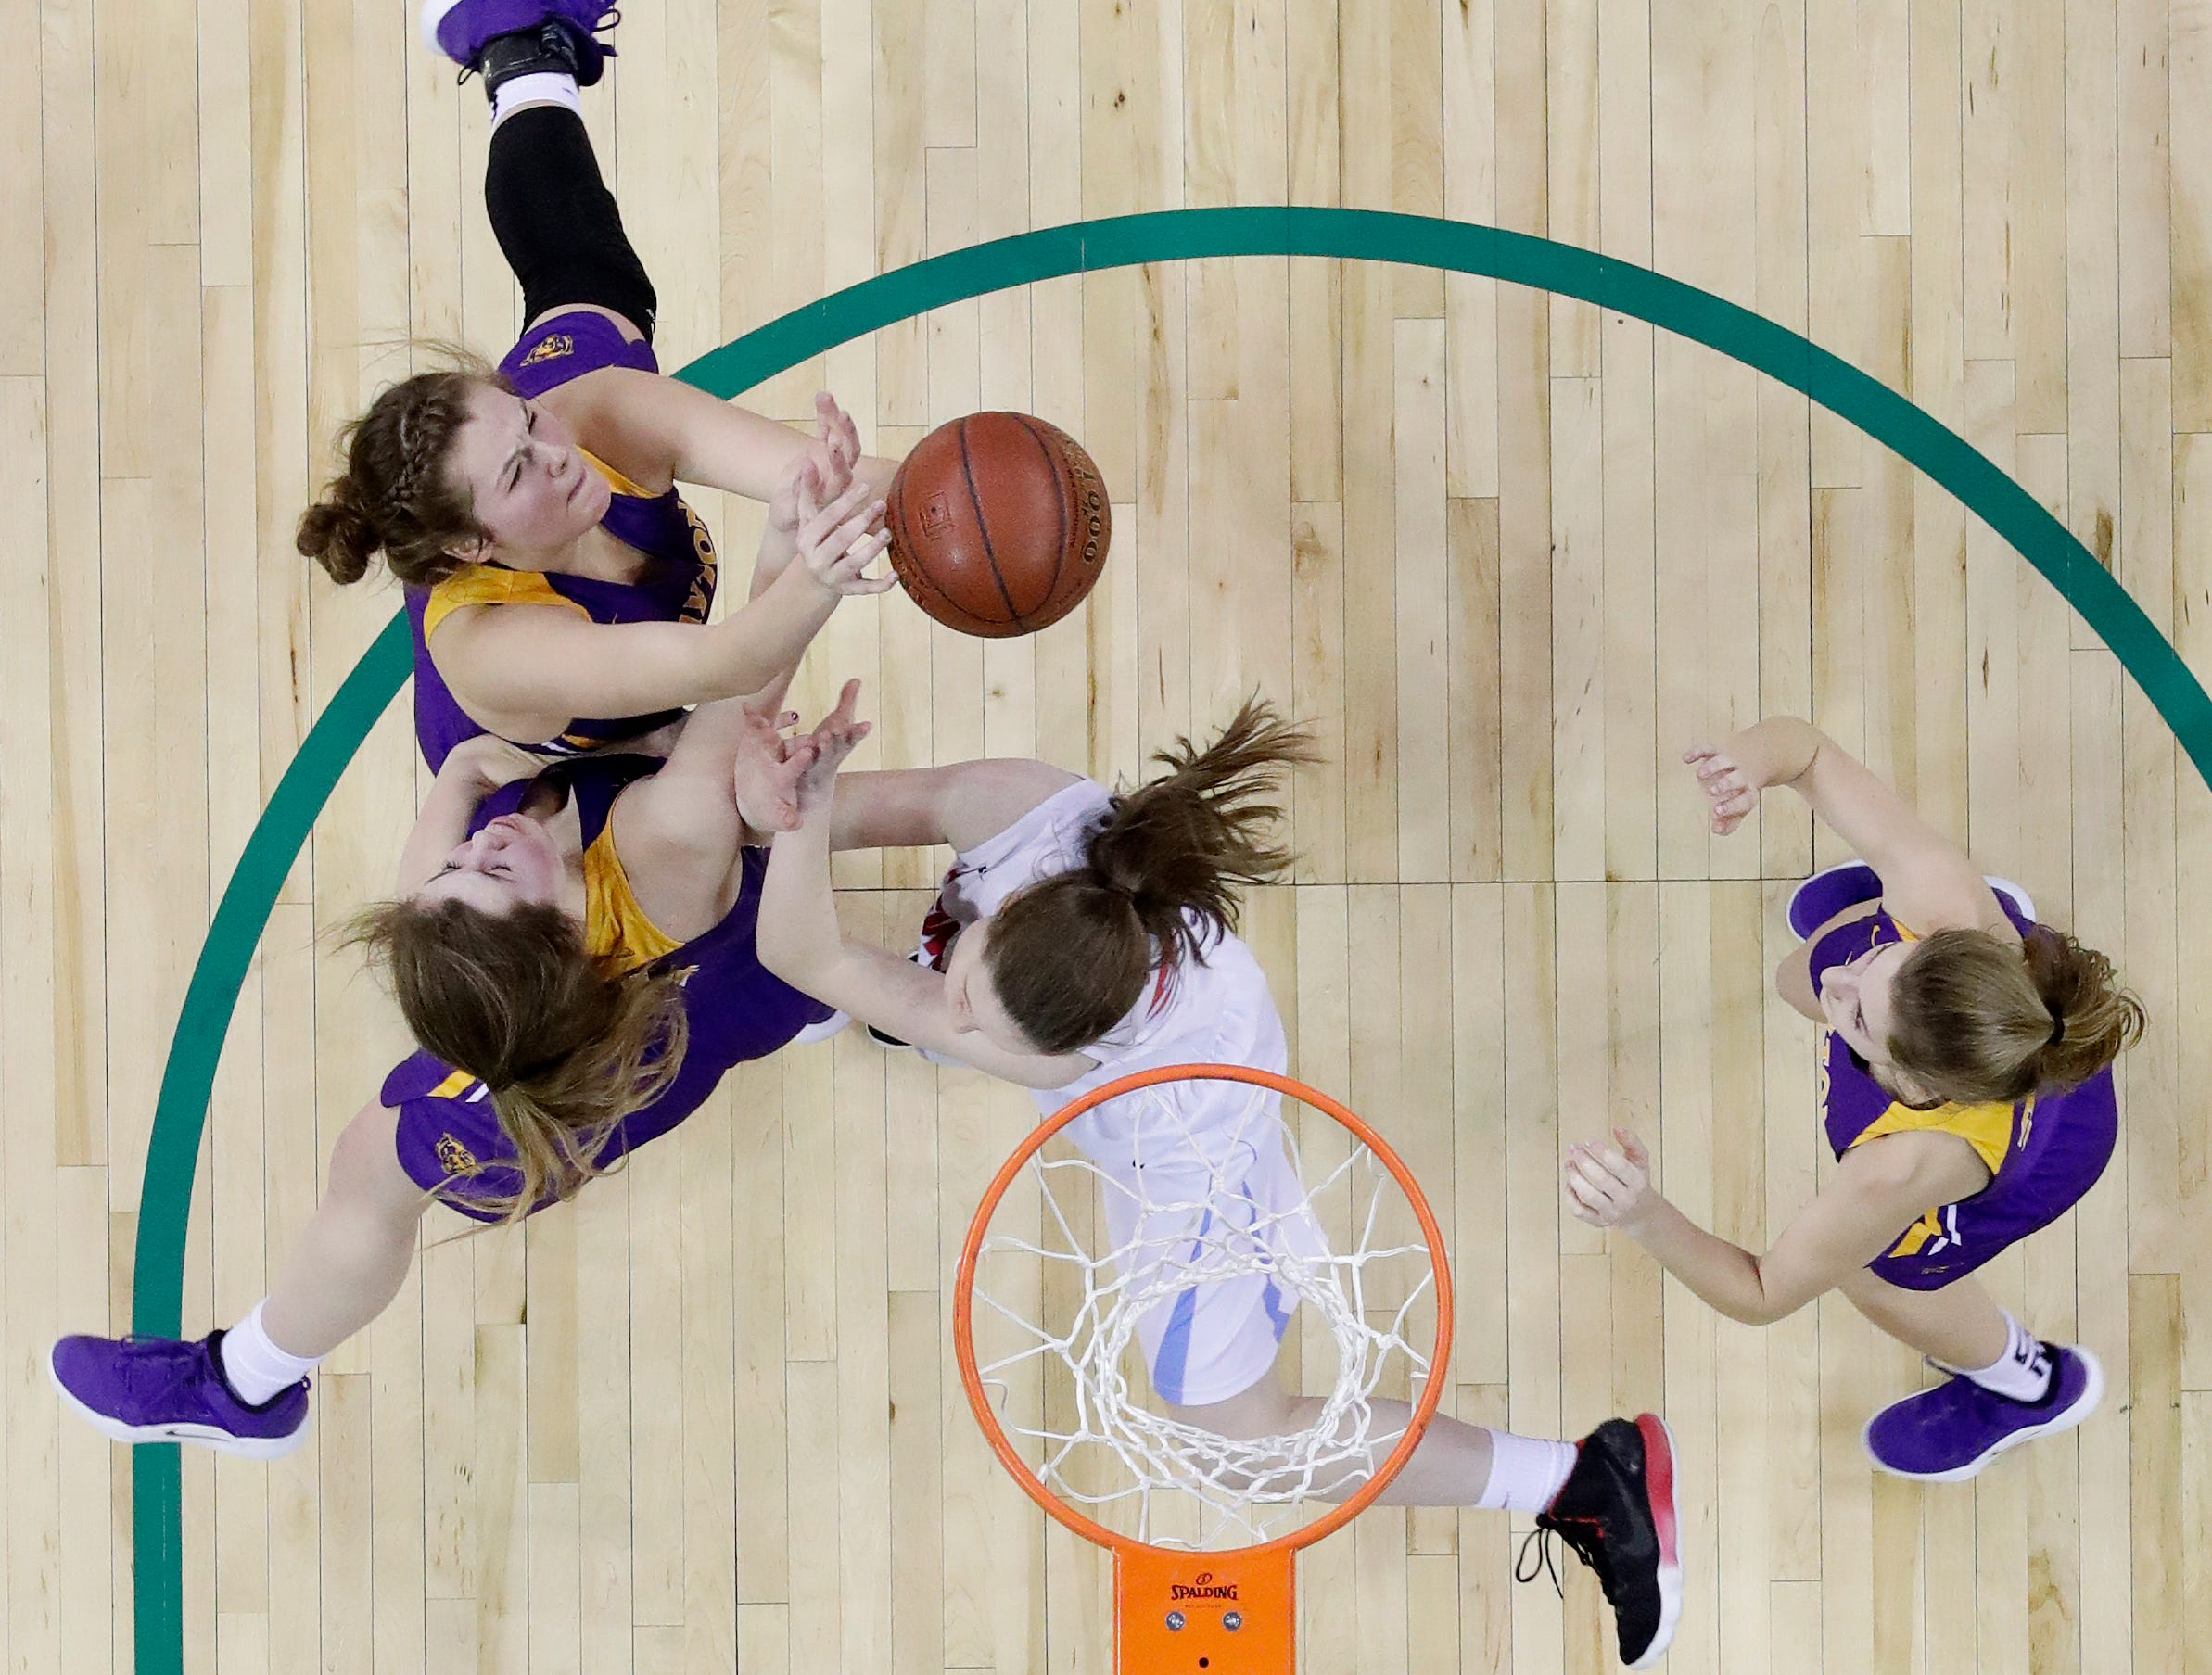 Clayton's Alison Leslie and Kailey Ketz collide while competing with Wausau Newman Catholic's Alex Frankel in a Division 5 semifinal at the WIAA state girls basketball tournament at the Resch Center on Friday, March 8, 2019 in Ashwaubenon, Wis.